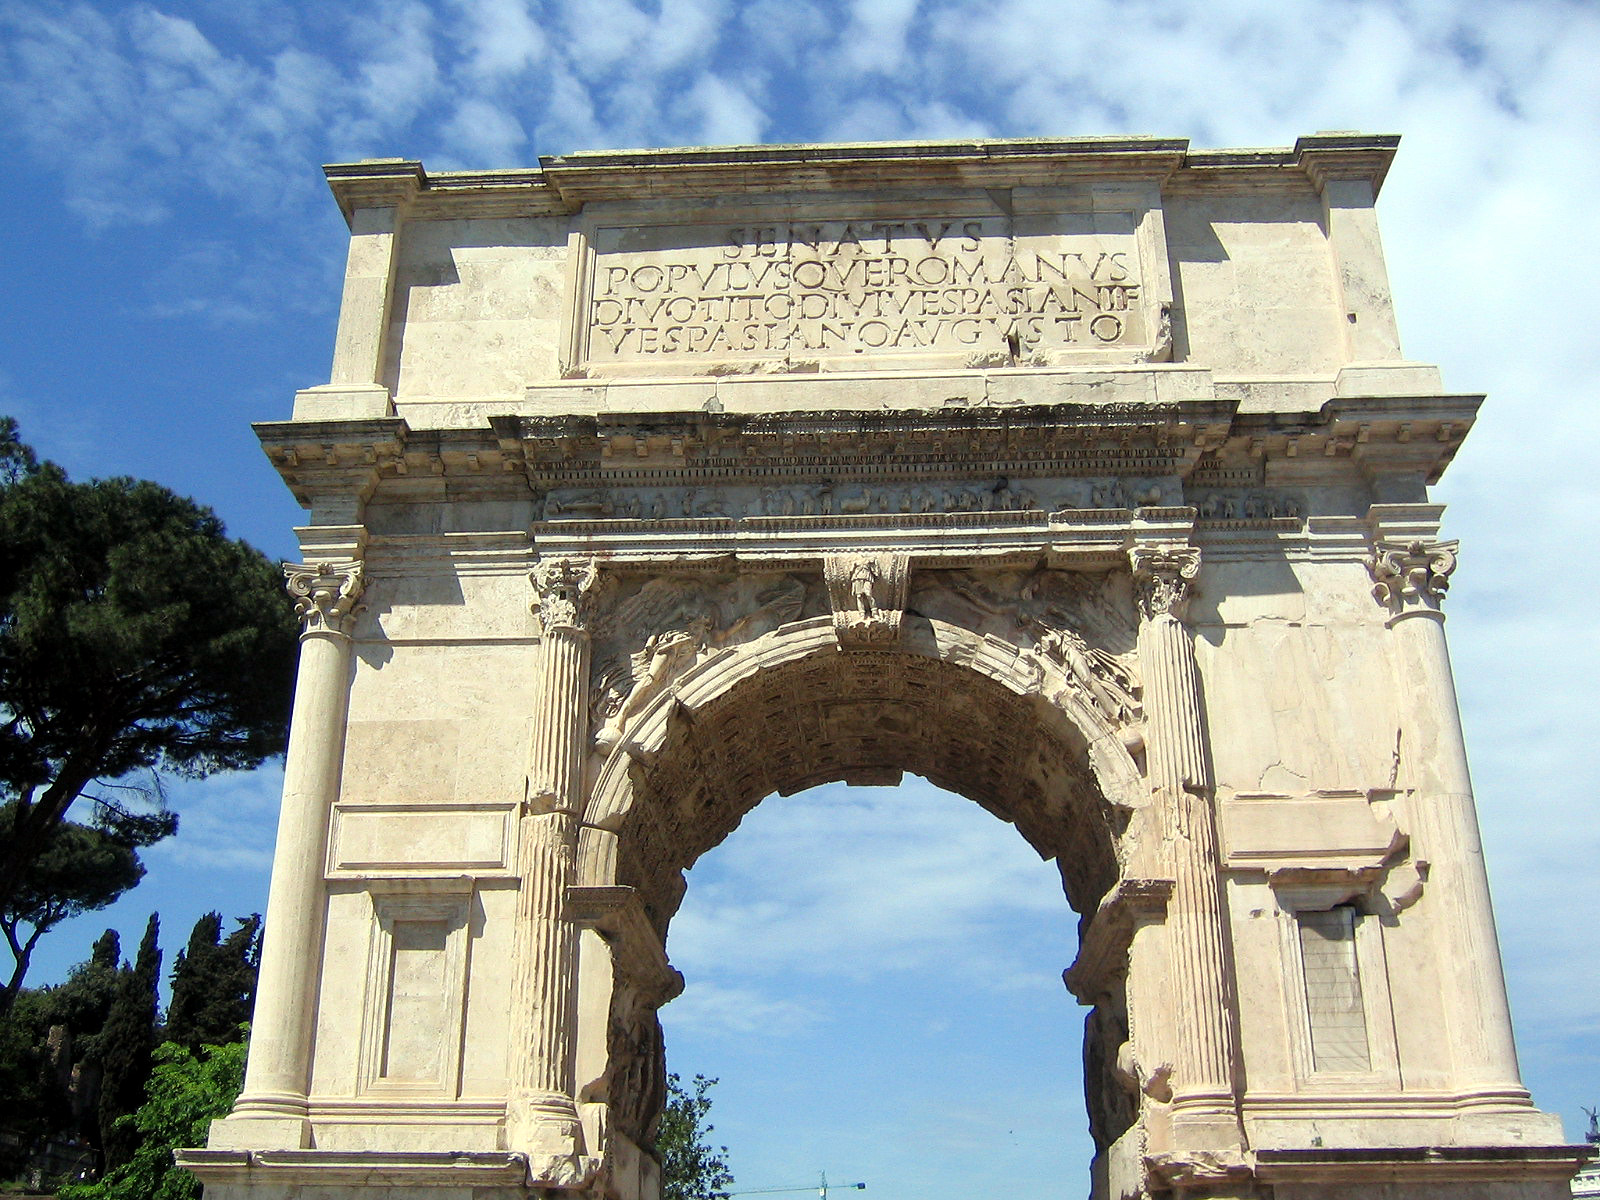 File:Arch of titus 2.jpg - Wikipedia